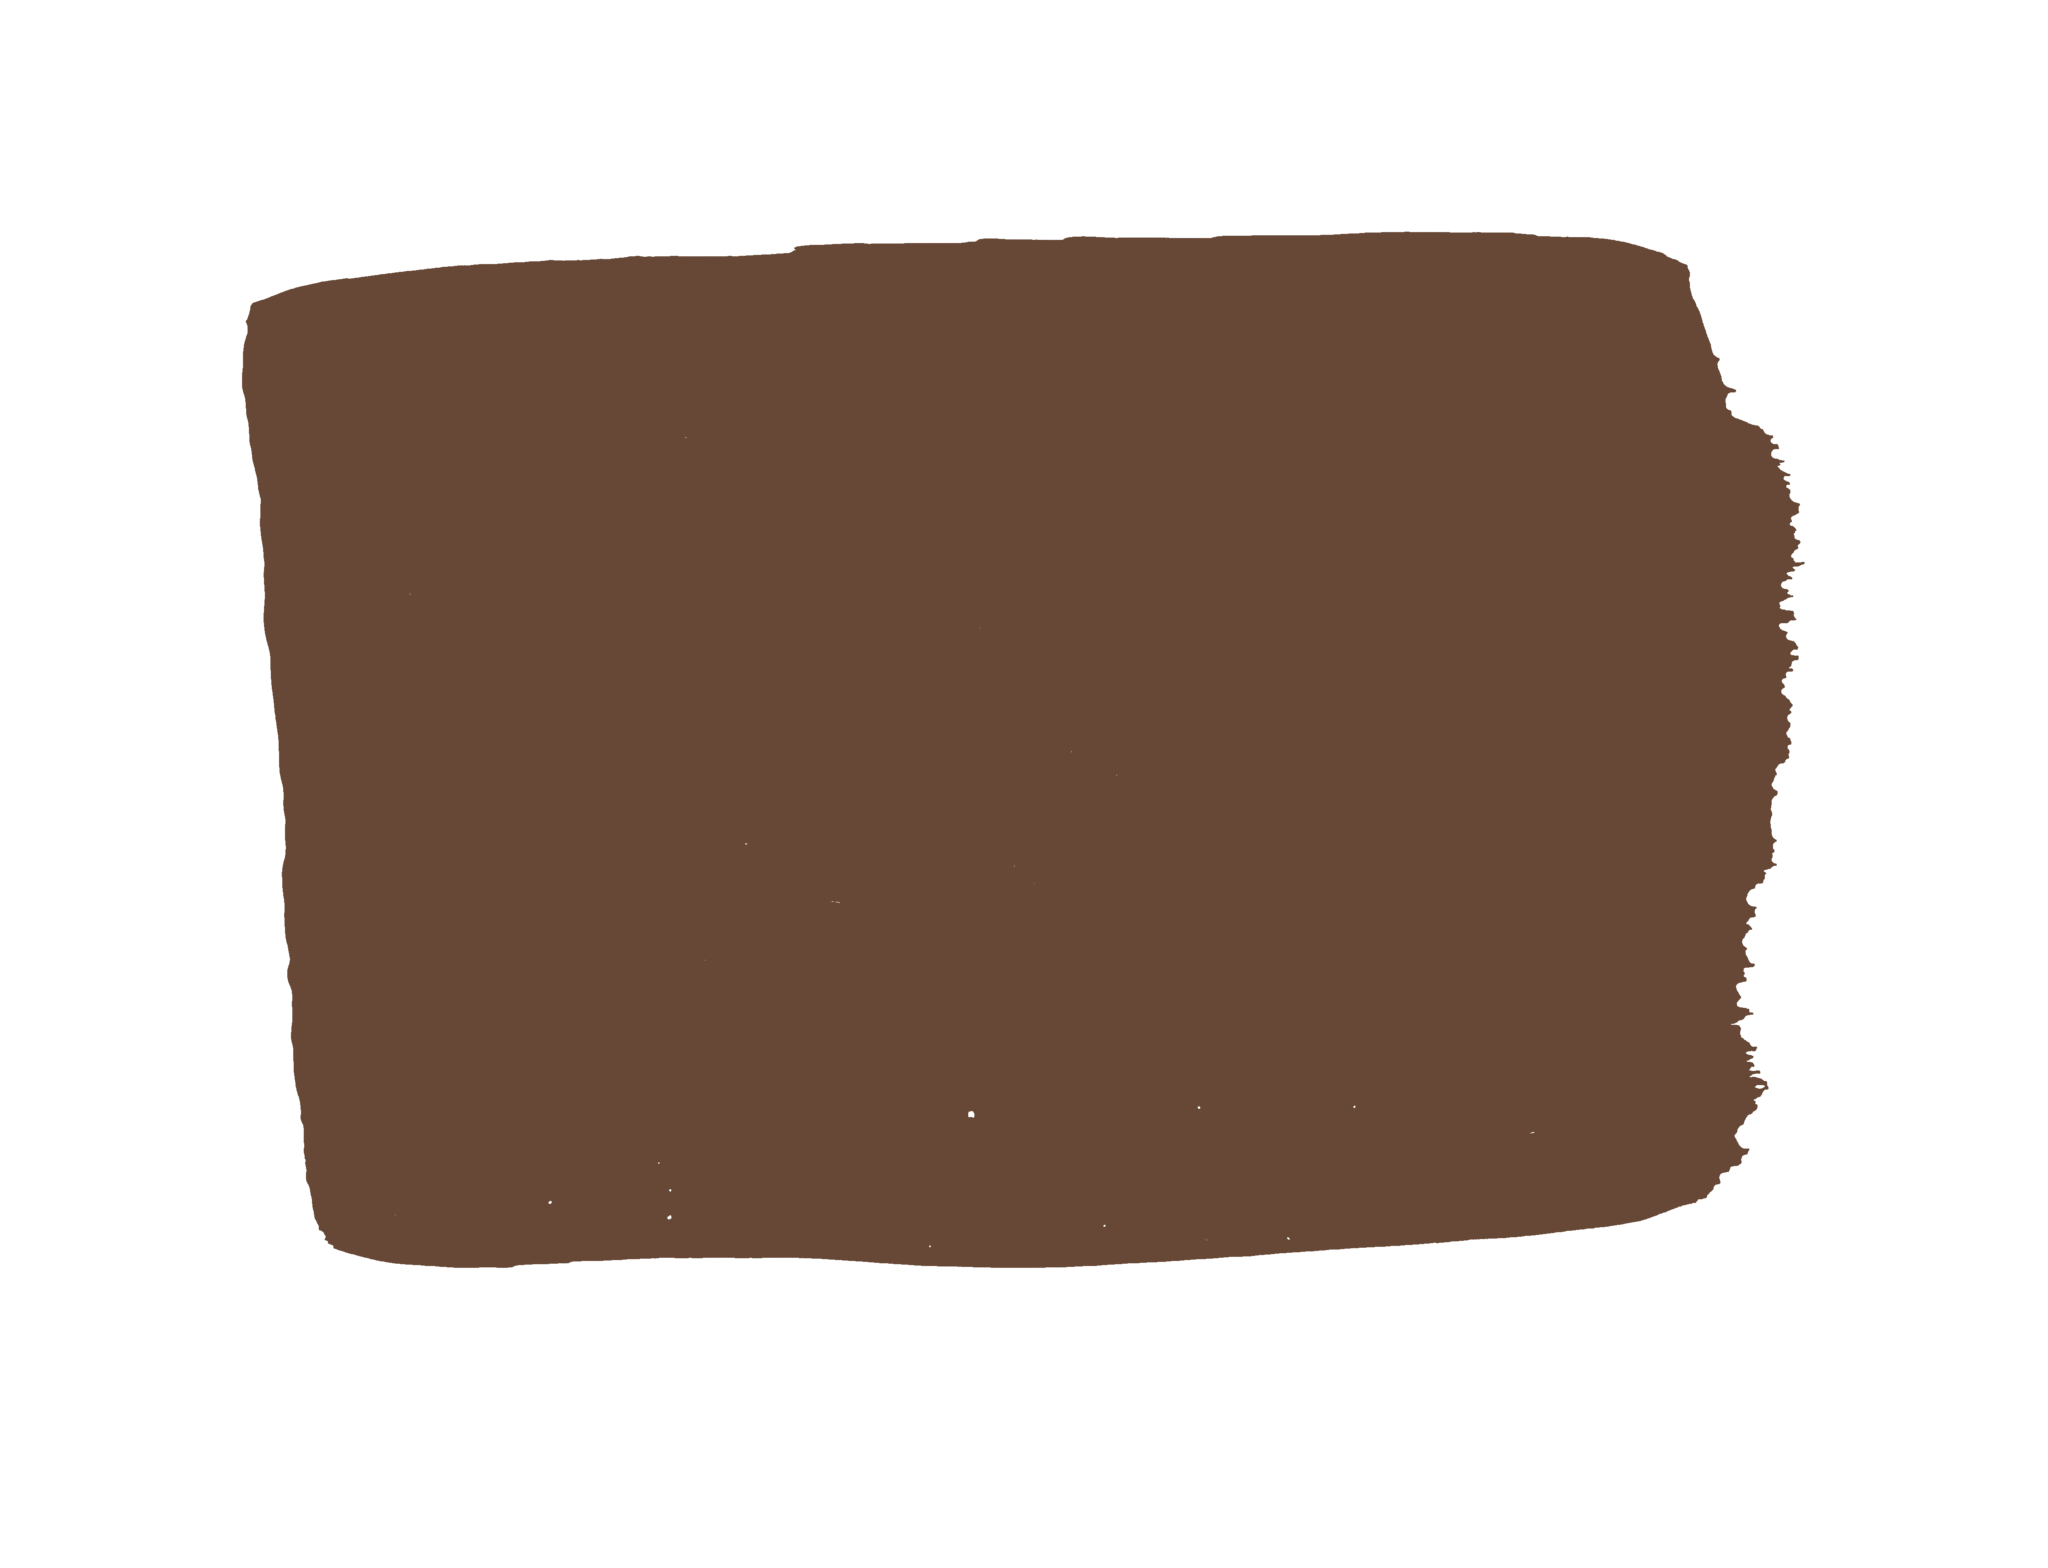 Chalk rectangle png. Paint by annie sloan